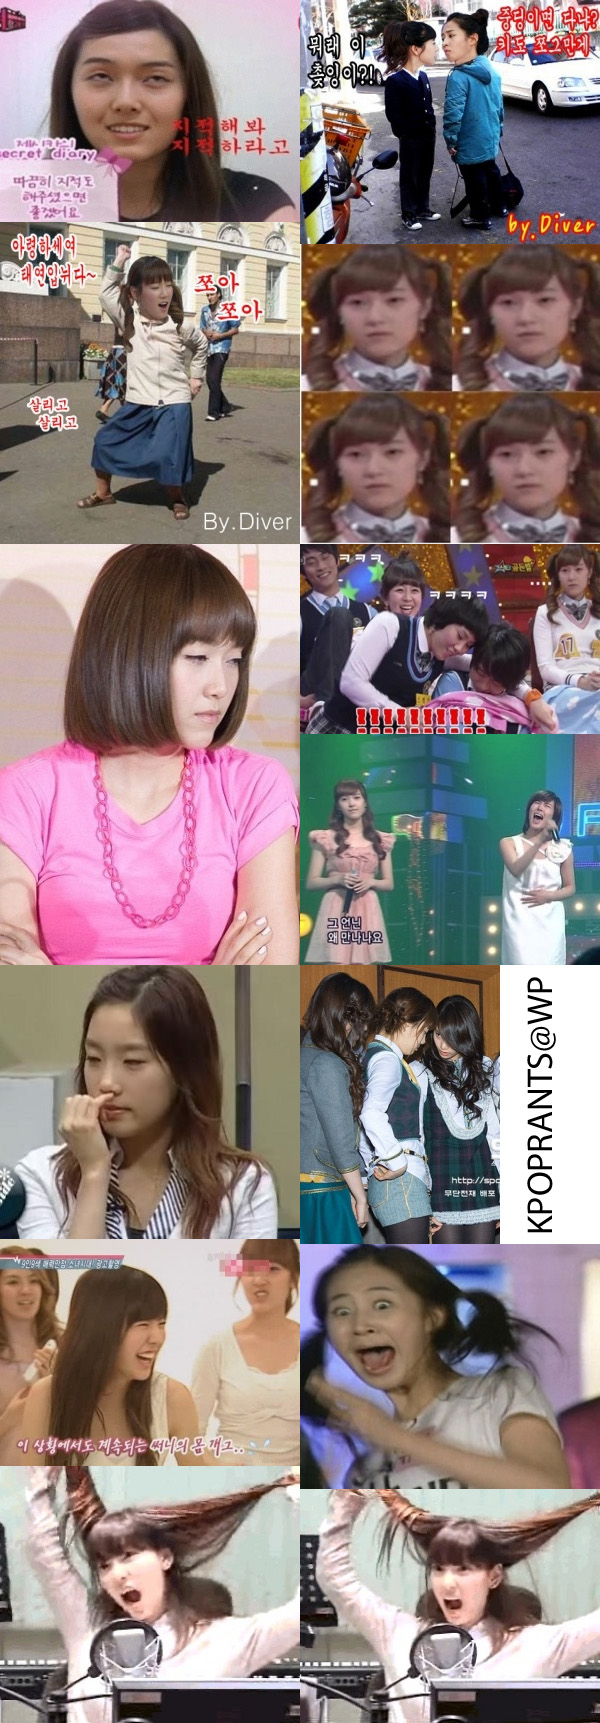 Snsd Funny Picture